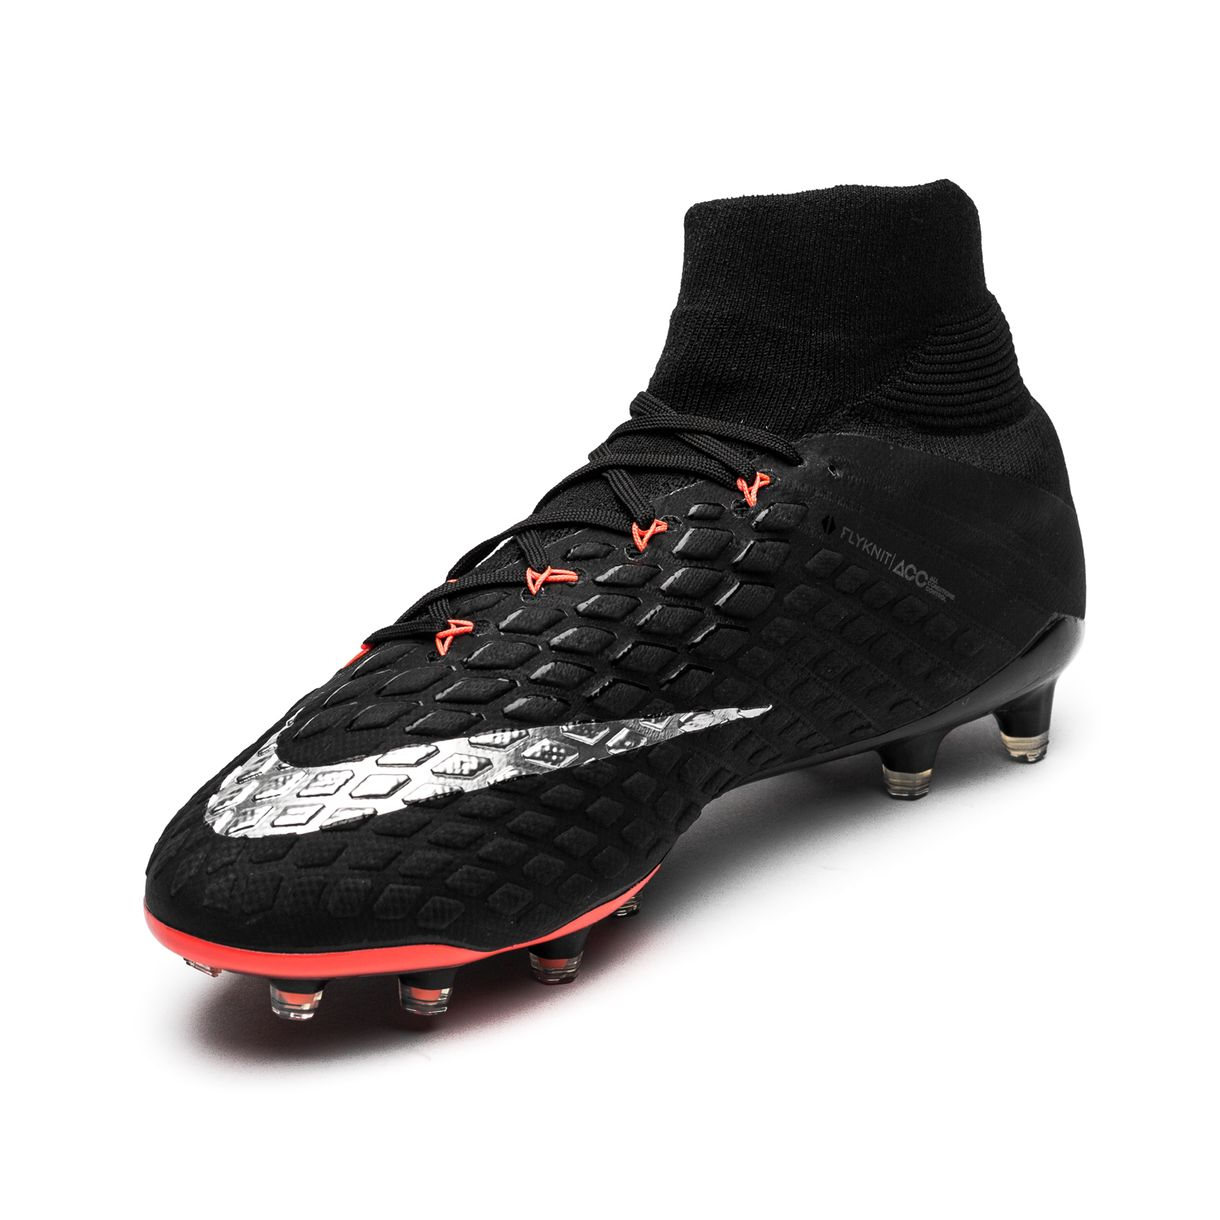 5f311e2b8aaa ... Click to enlarge image  nike hypervenom phantom 3 df fg black strike night black metallic silver anthracite e.jpg  ...